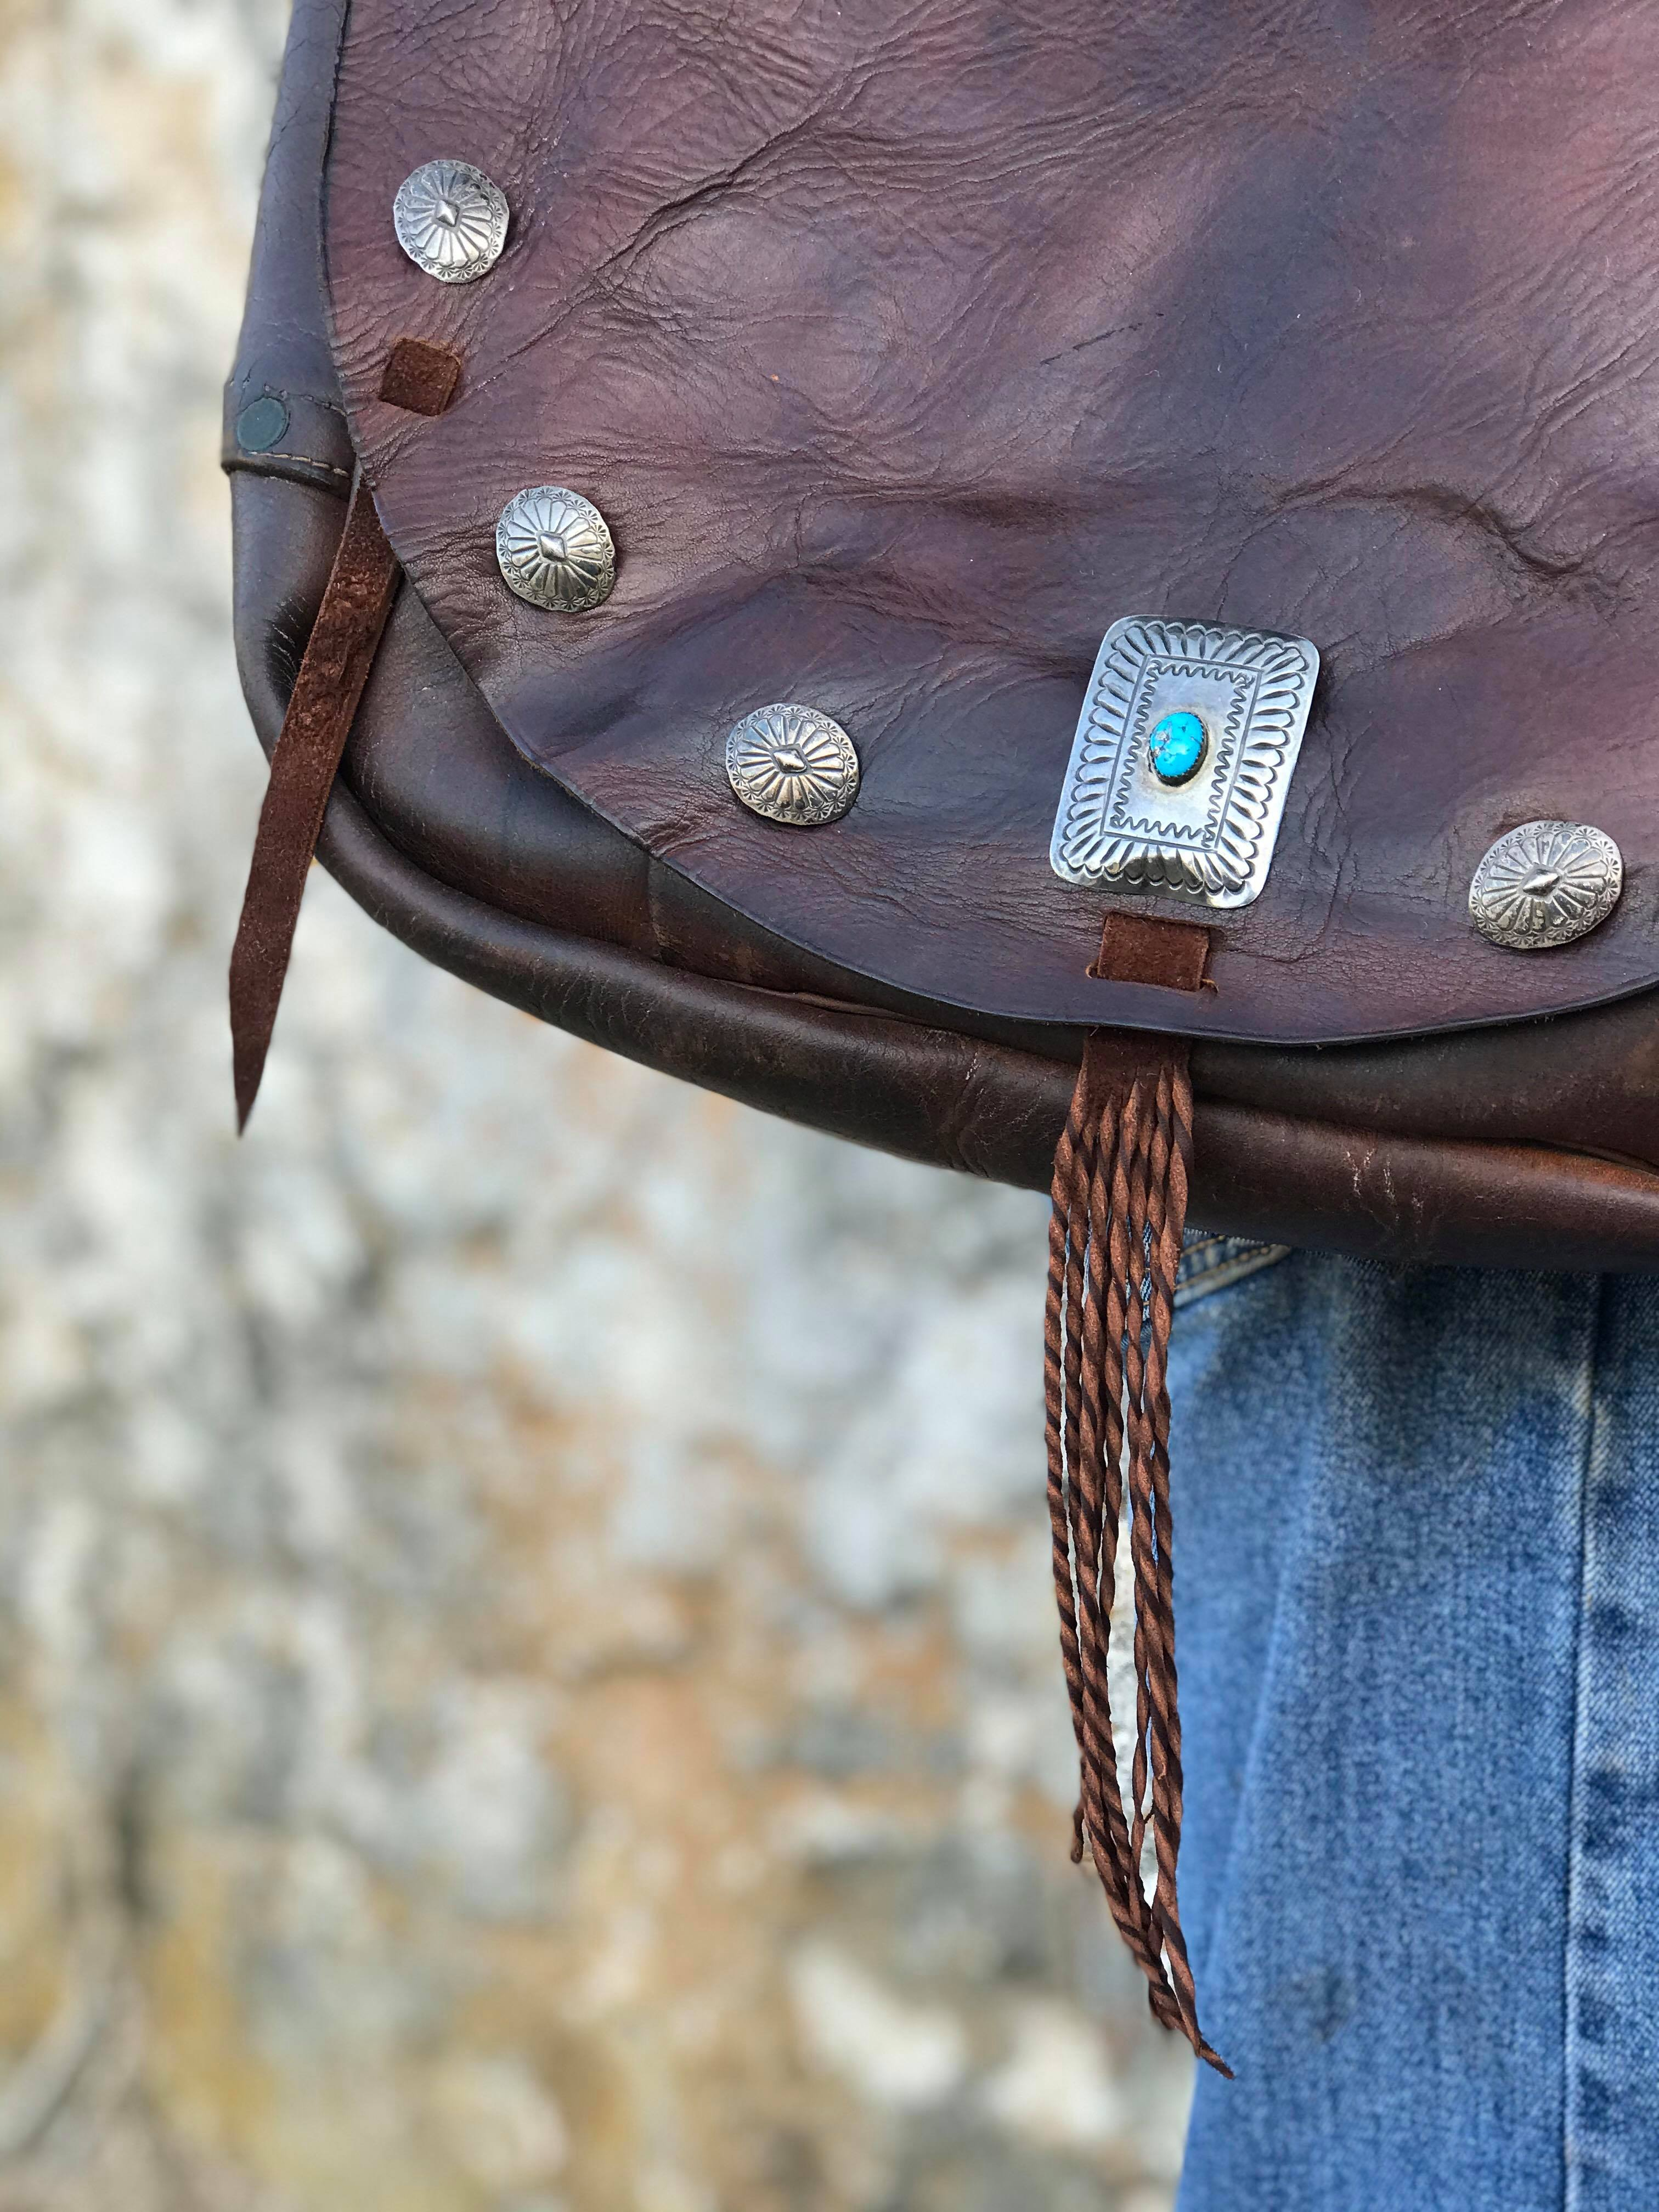 Repurposed Vintage Bag